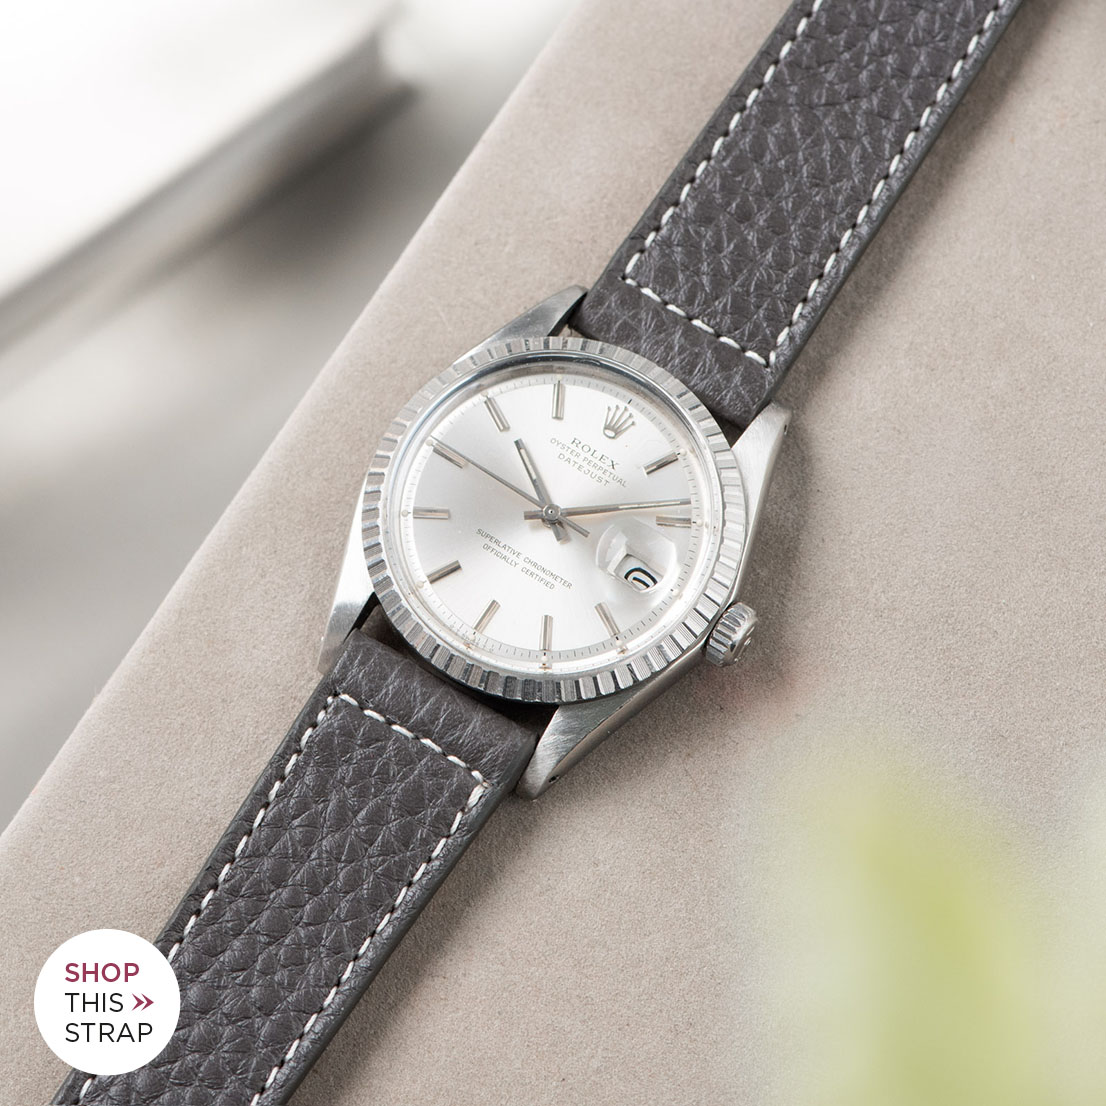 Bulang and sons_Strap Guide_Rolex Datejust Silverdial 1601 1603 1600 1630_ELEPHANT GREY LEATHER WATCH STRAP